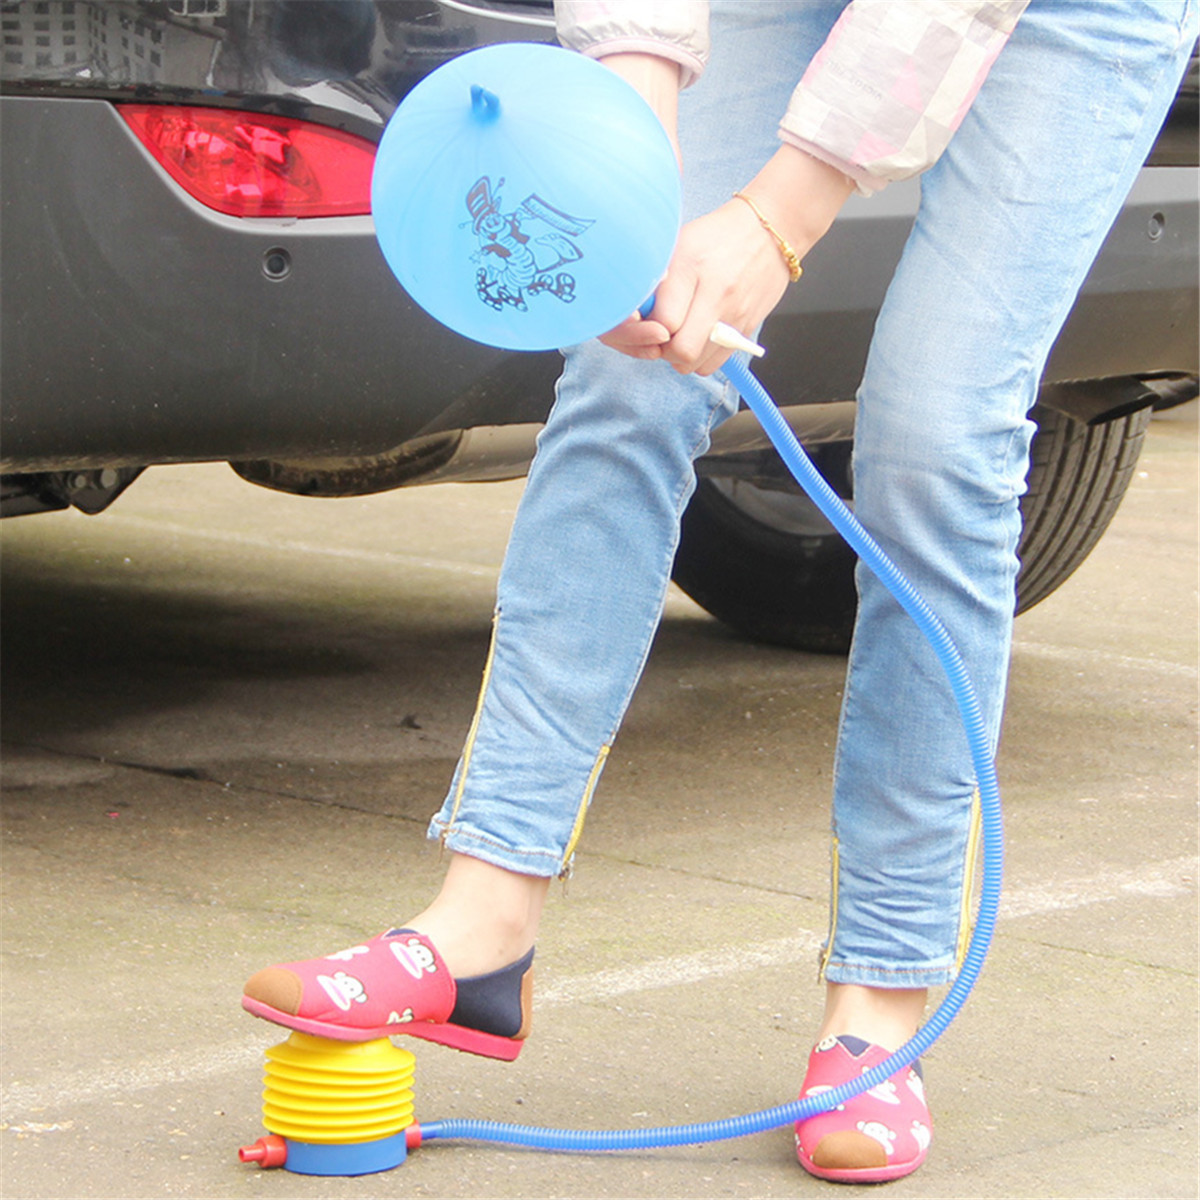 Foot air pump inflatable inflator inflation balloon yoga for Housse ballon yoga